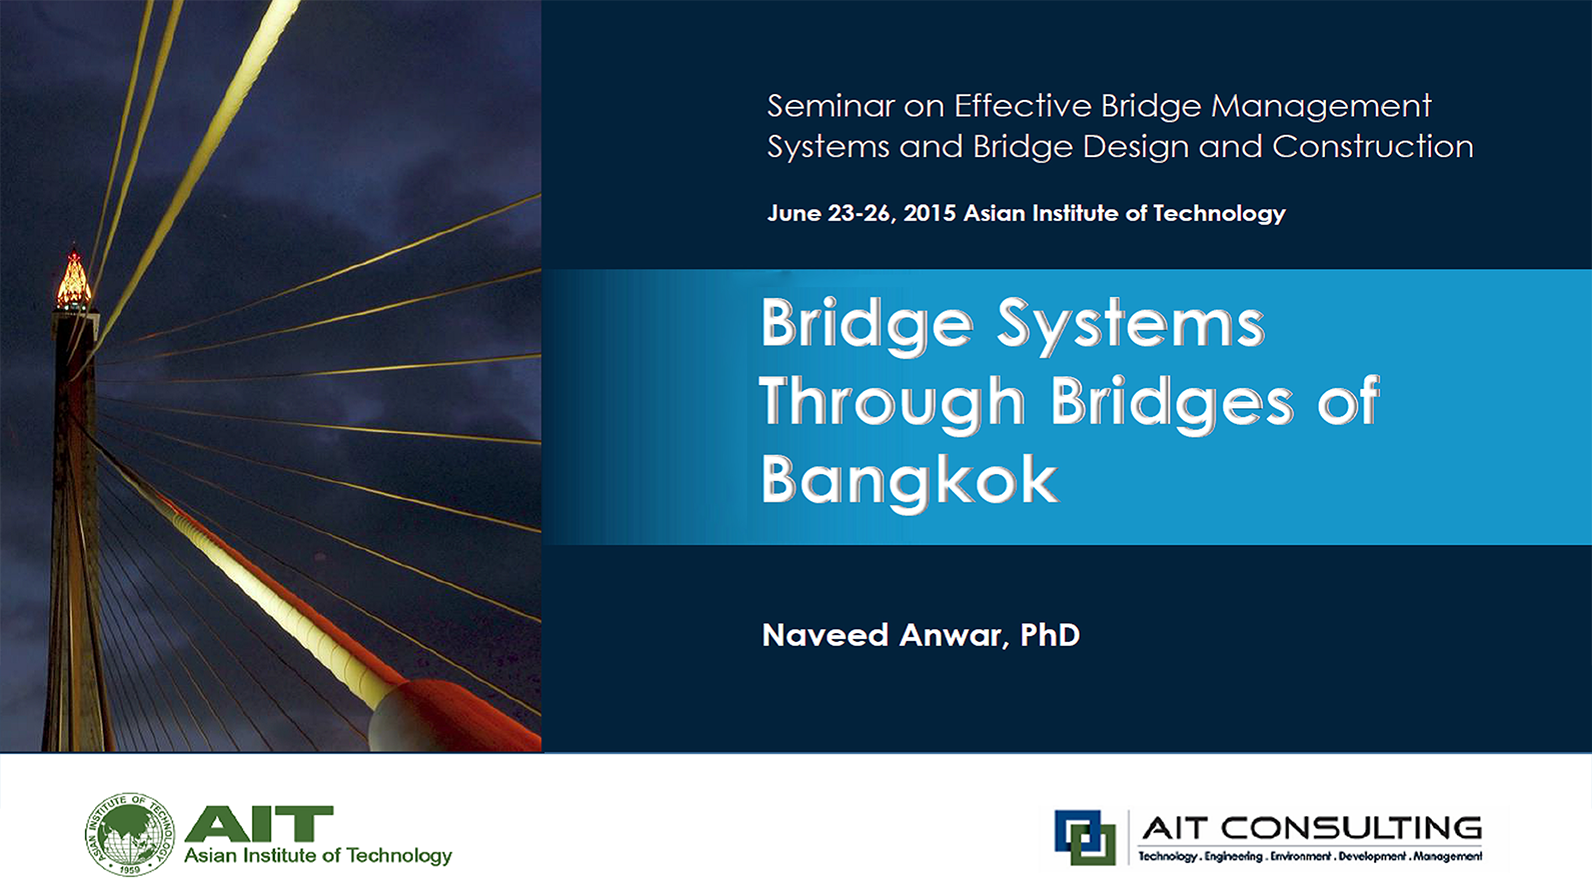 Bridge Systems through Bridges of Bangkok